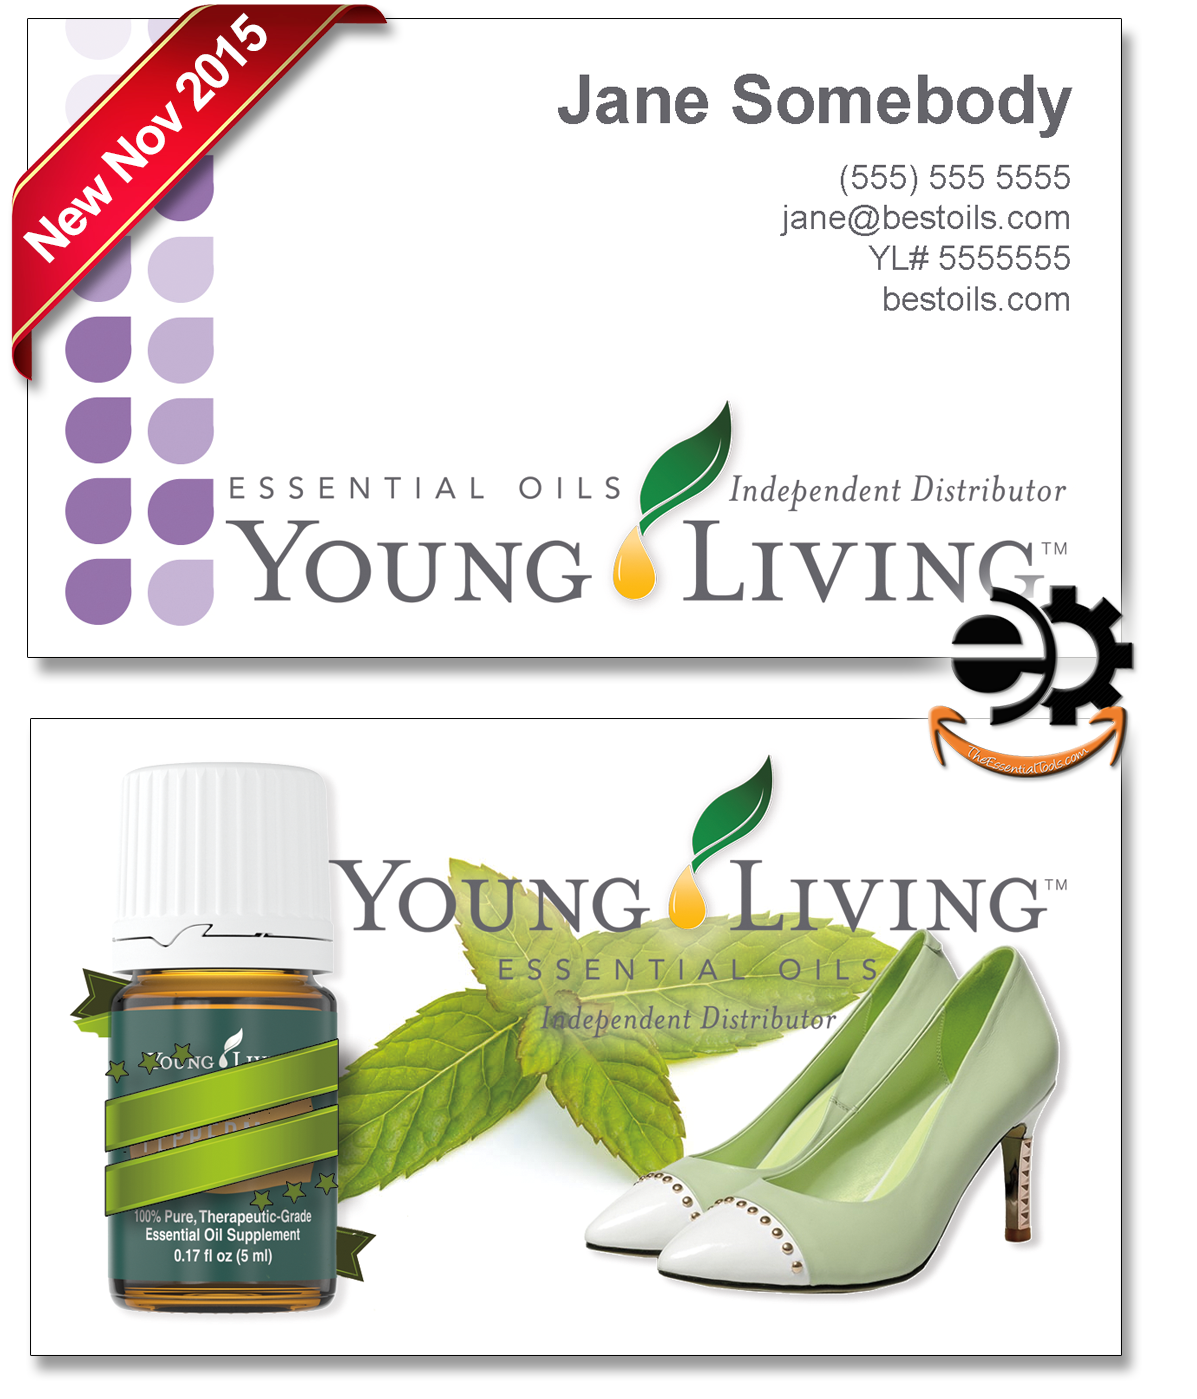 The Essential Tools Young Living Essential Oils Business Cards